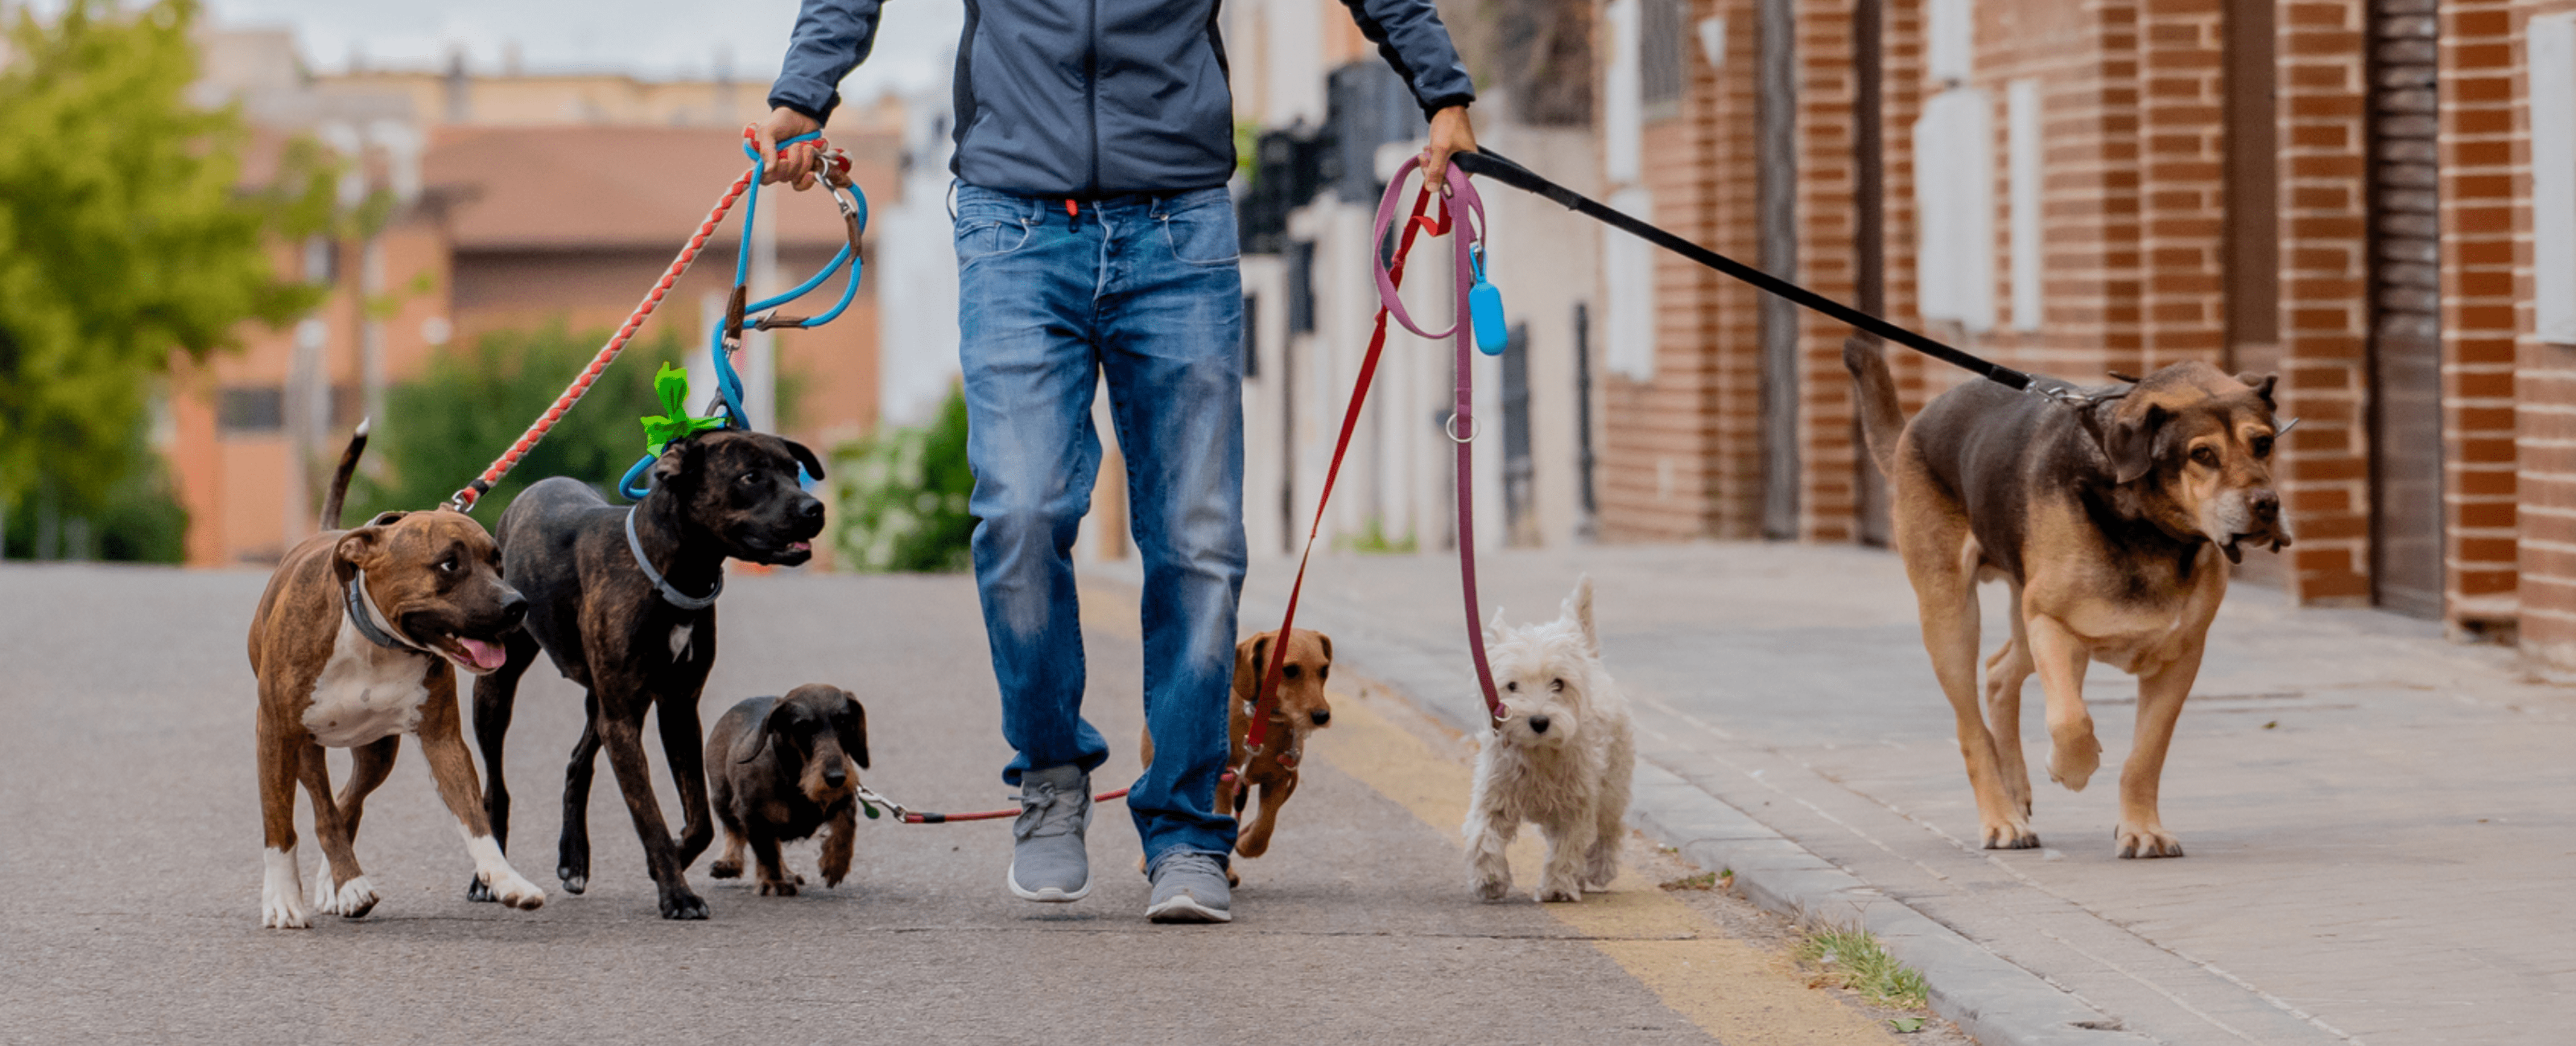 A man walking several dogs